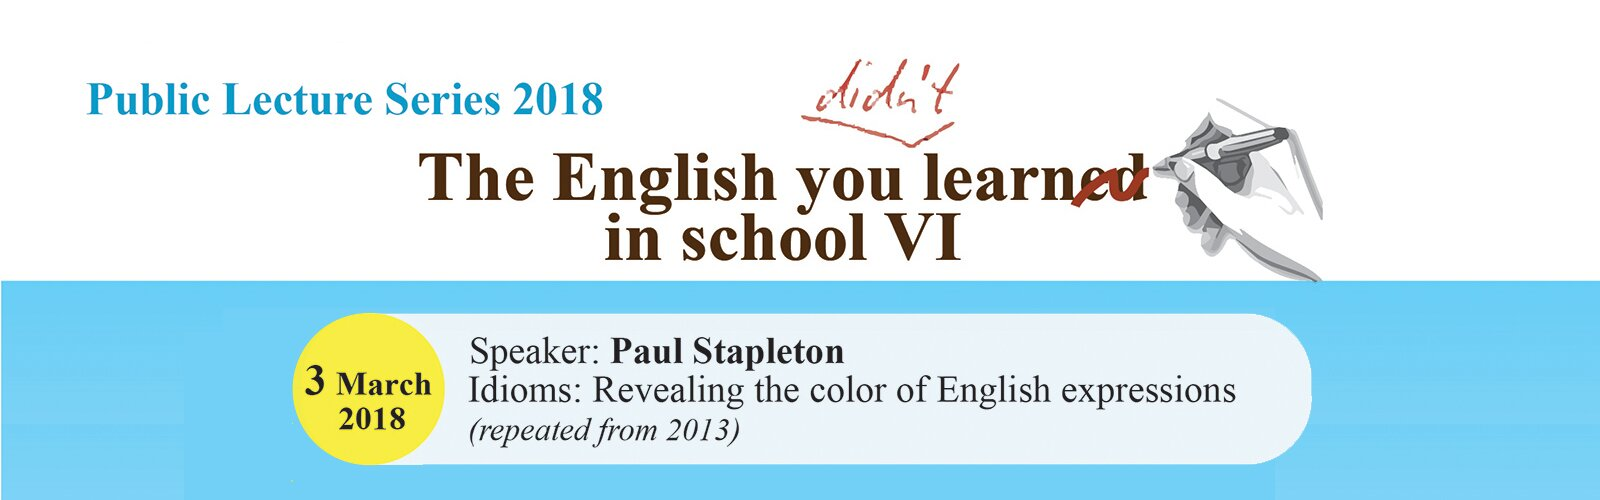 Public Lecture 2018 – The English you didn't learn in School VI